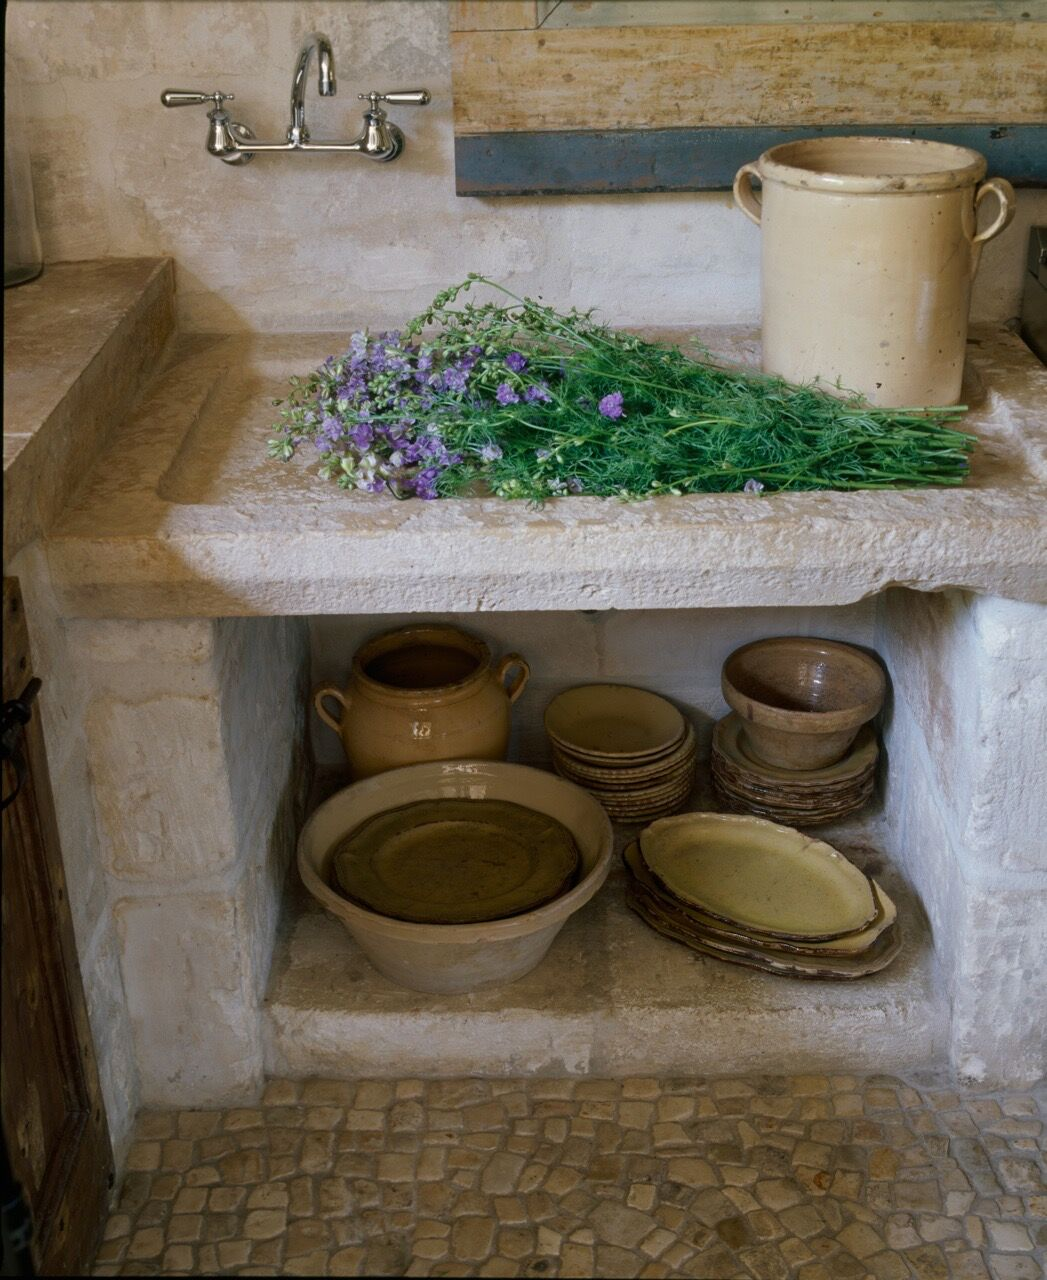 Ancient stone sink in a beautiful kitchen with reclaimed materials sourced in France and Europe - Chateau Domingue.